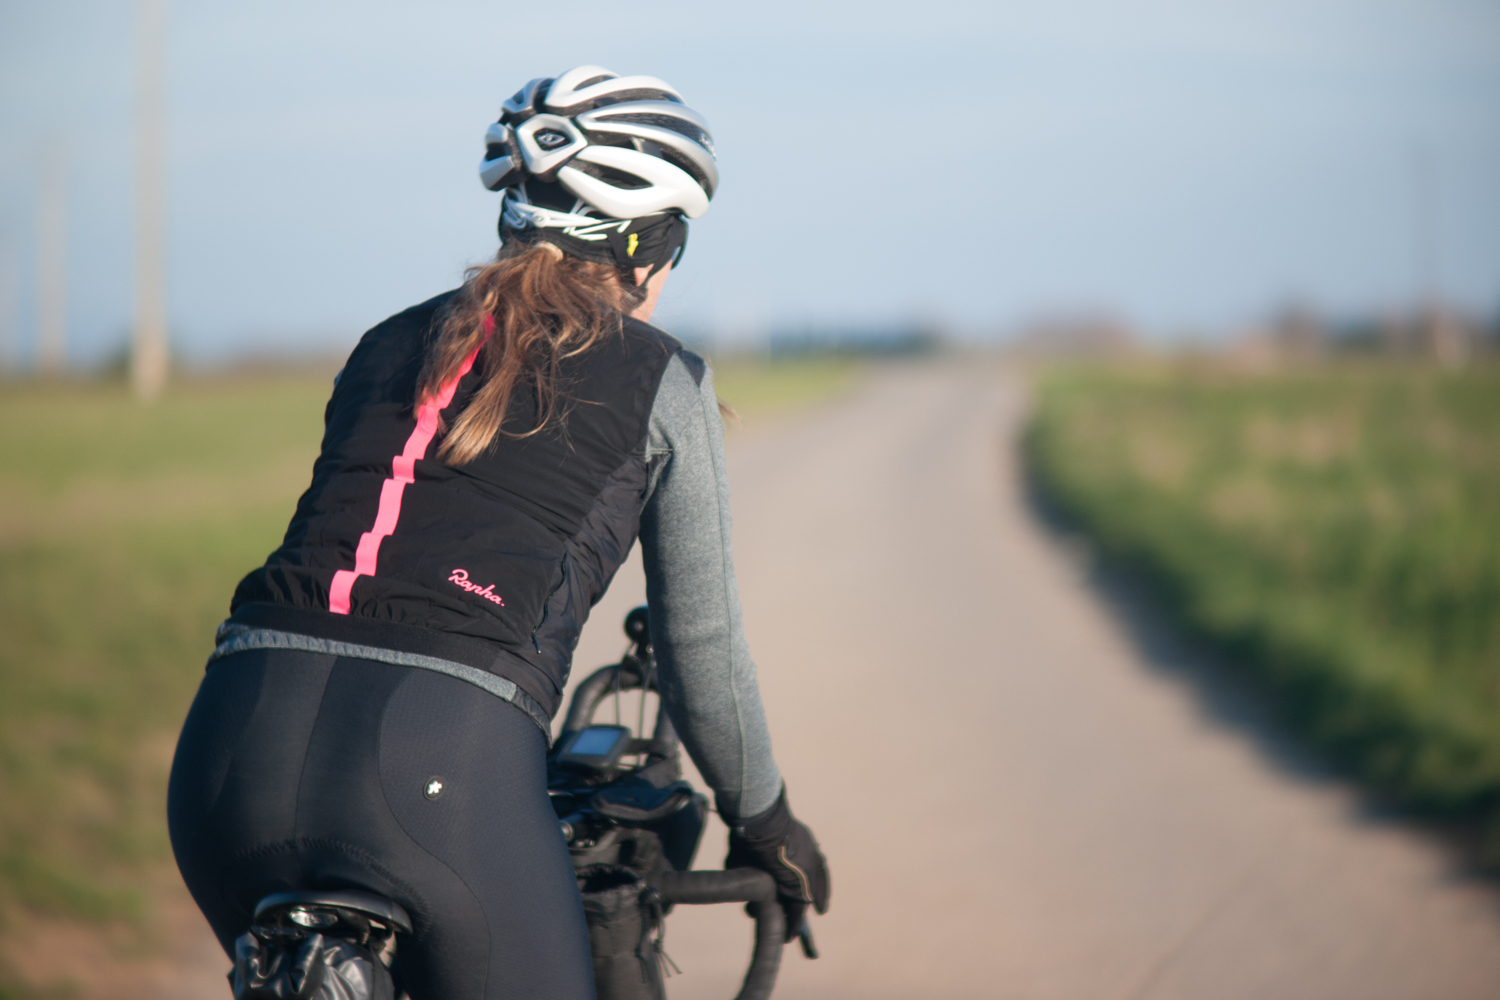 Rapha Festive 500 - Rapha Woman Polartech insulated vest